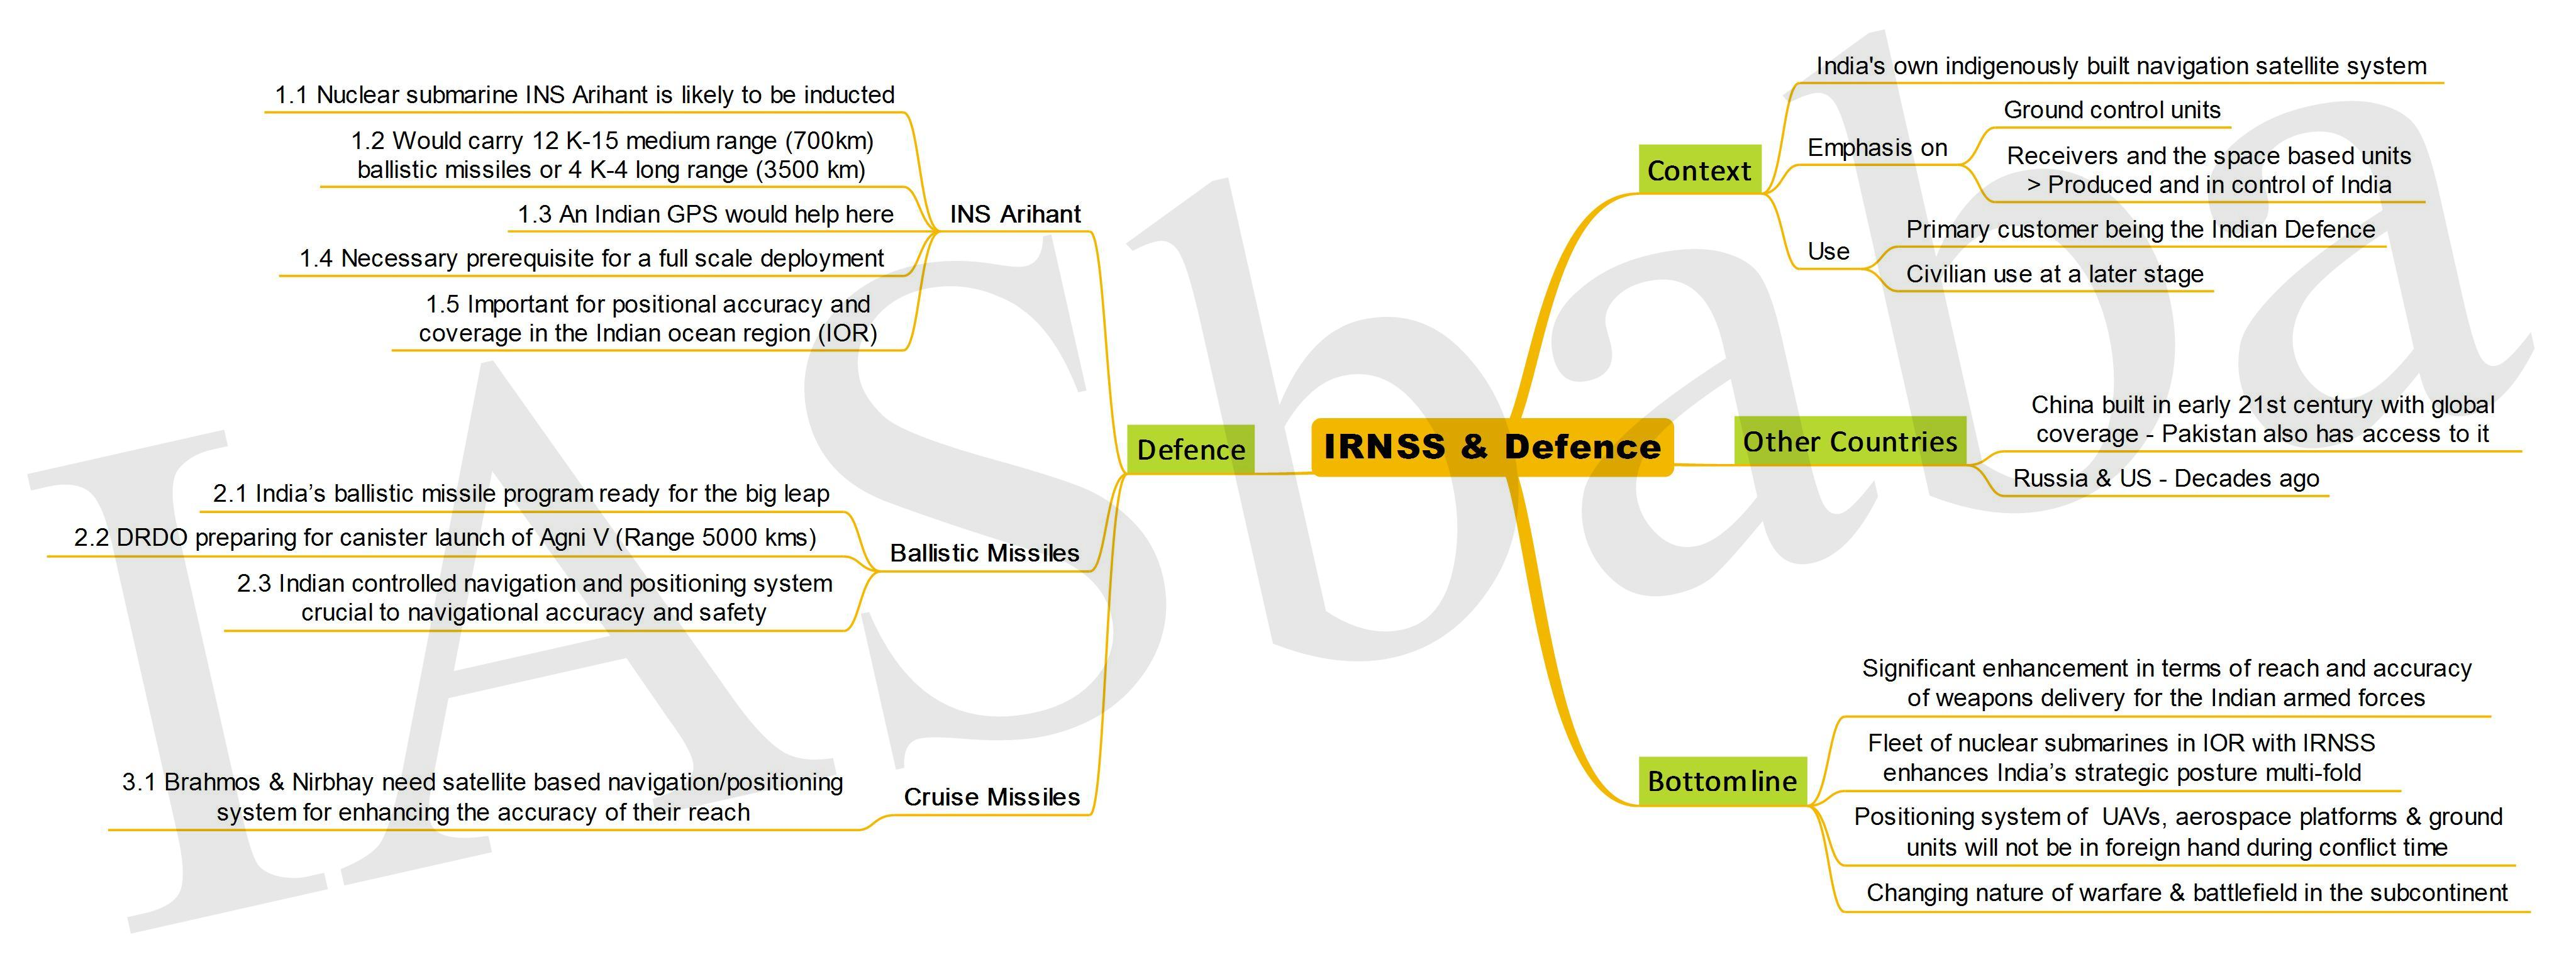 IRNSS and Defence IASbaba